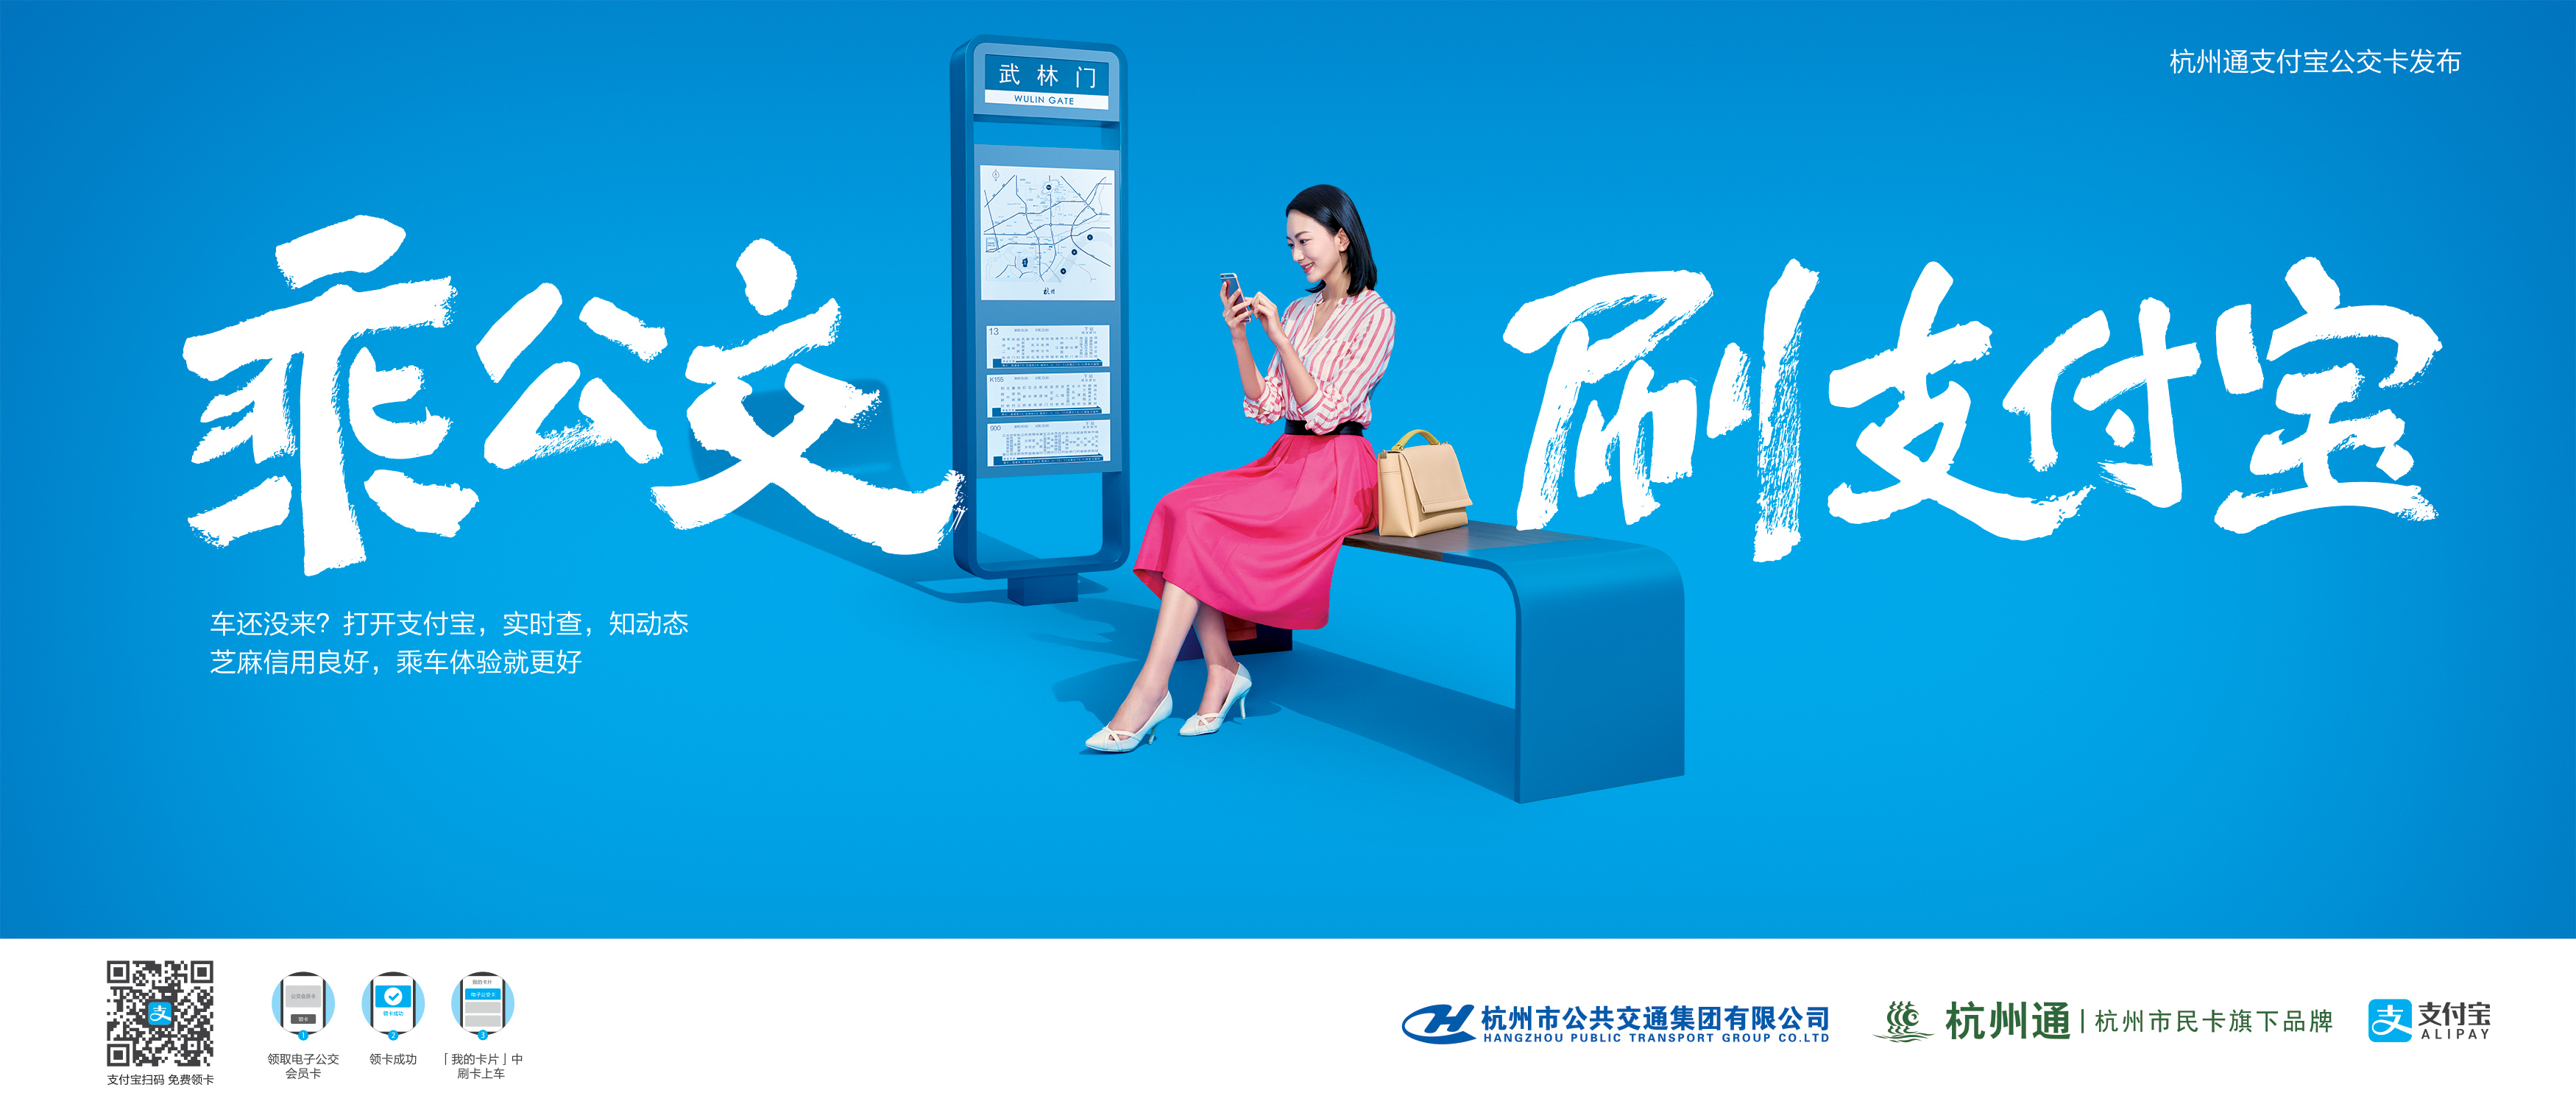 Alipay_Hangzhou Bus_Officelady